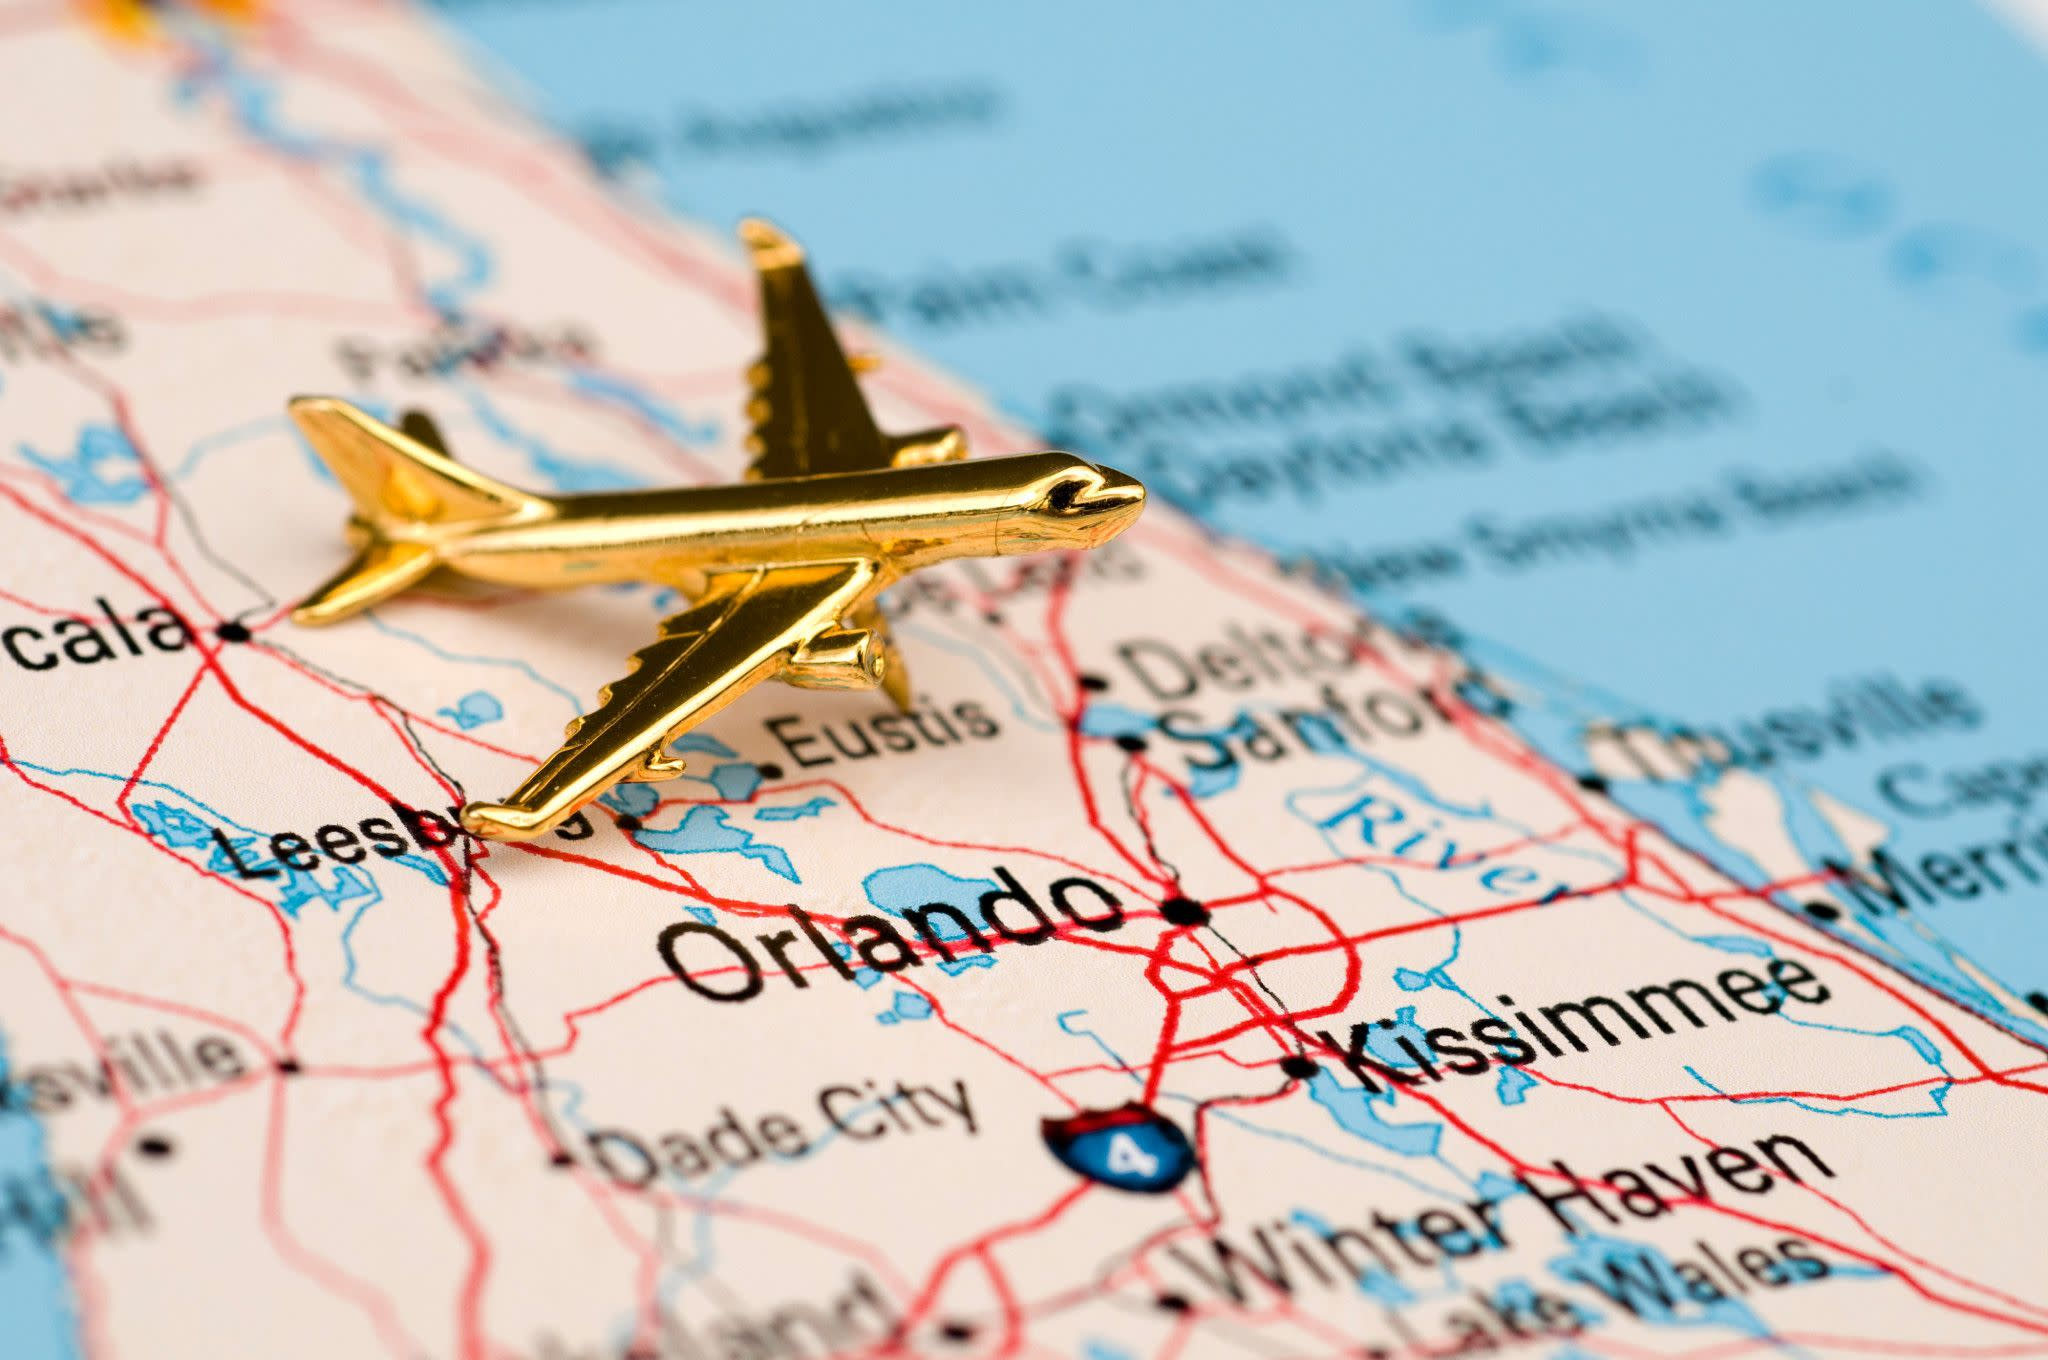 Booking Orlando Hotel Rooms and Transportation in Advance Can Save Money